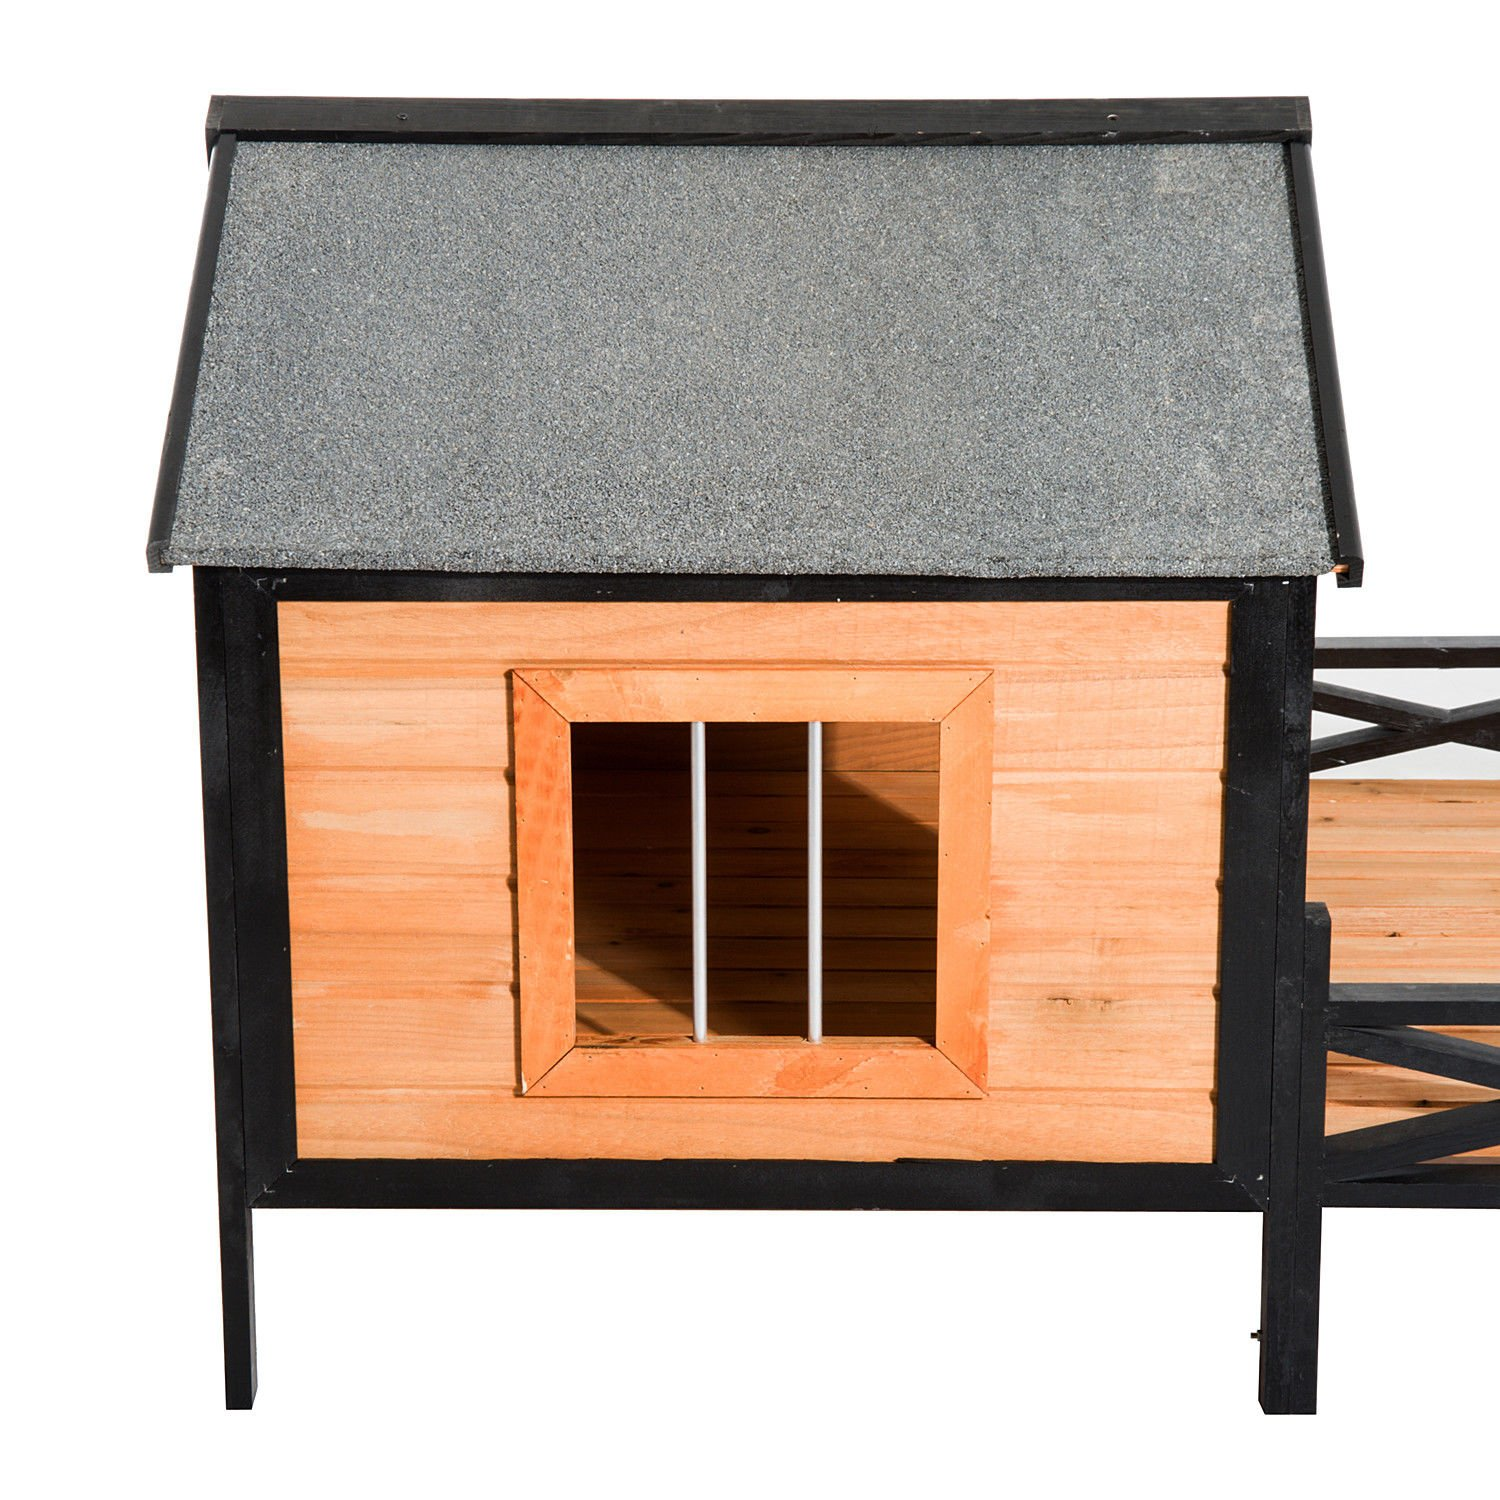 PawHut 67'' Large Wooden Cabin Style Elevated Outdoor Dog House with Porch by PawHut (Image #4)